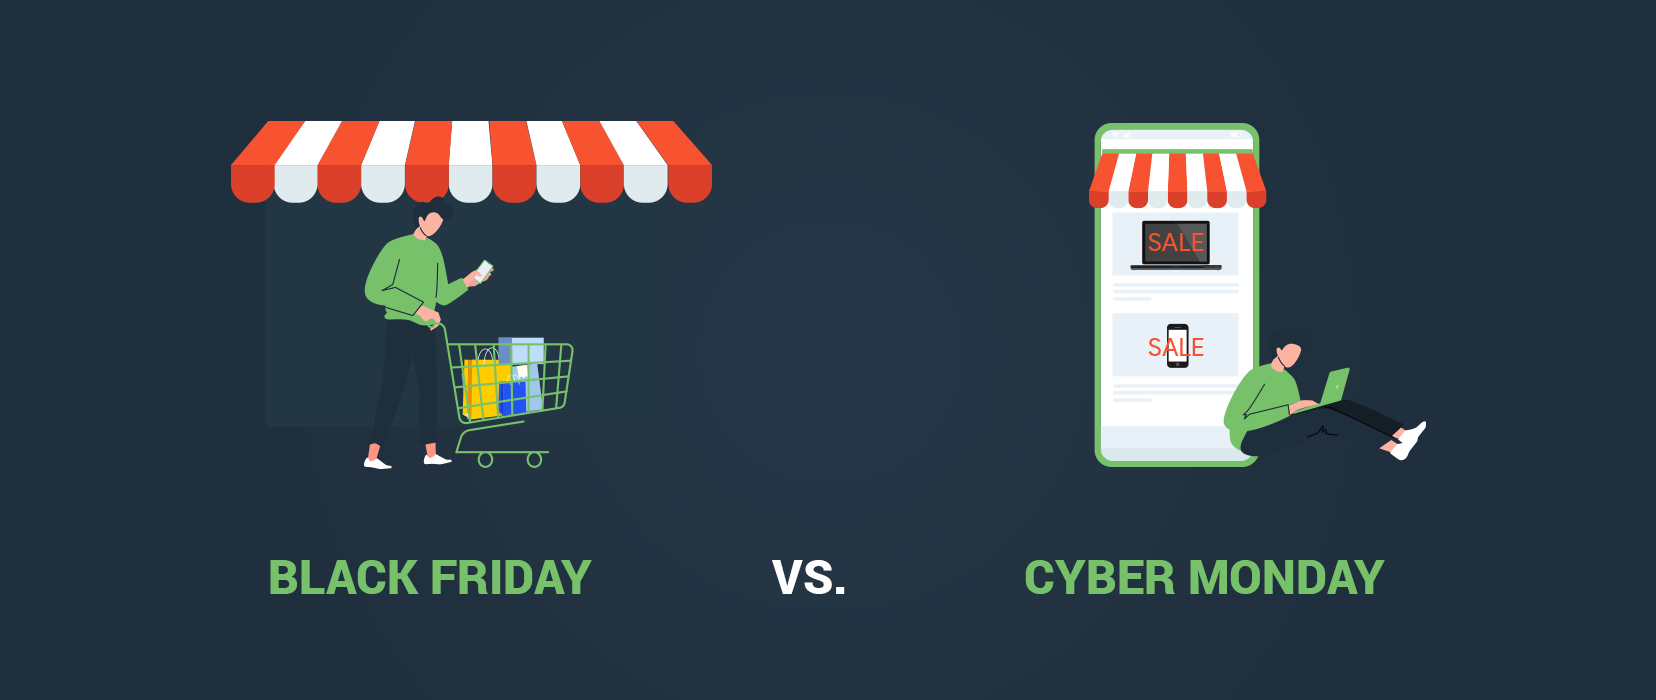 Comparision between Black Friday and Cyber Monday